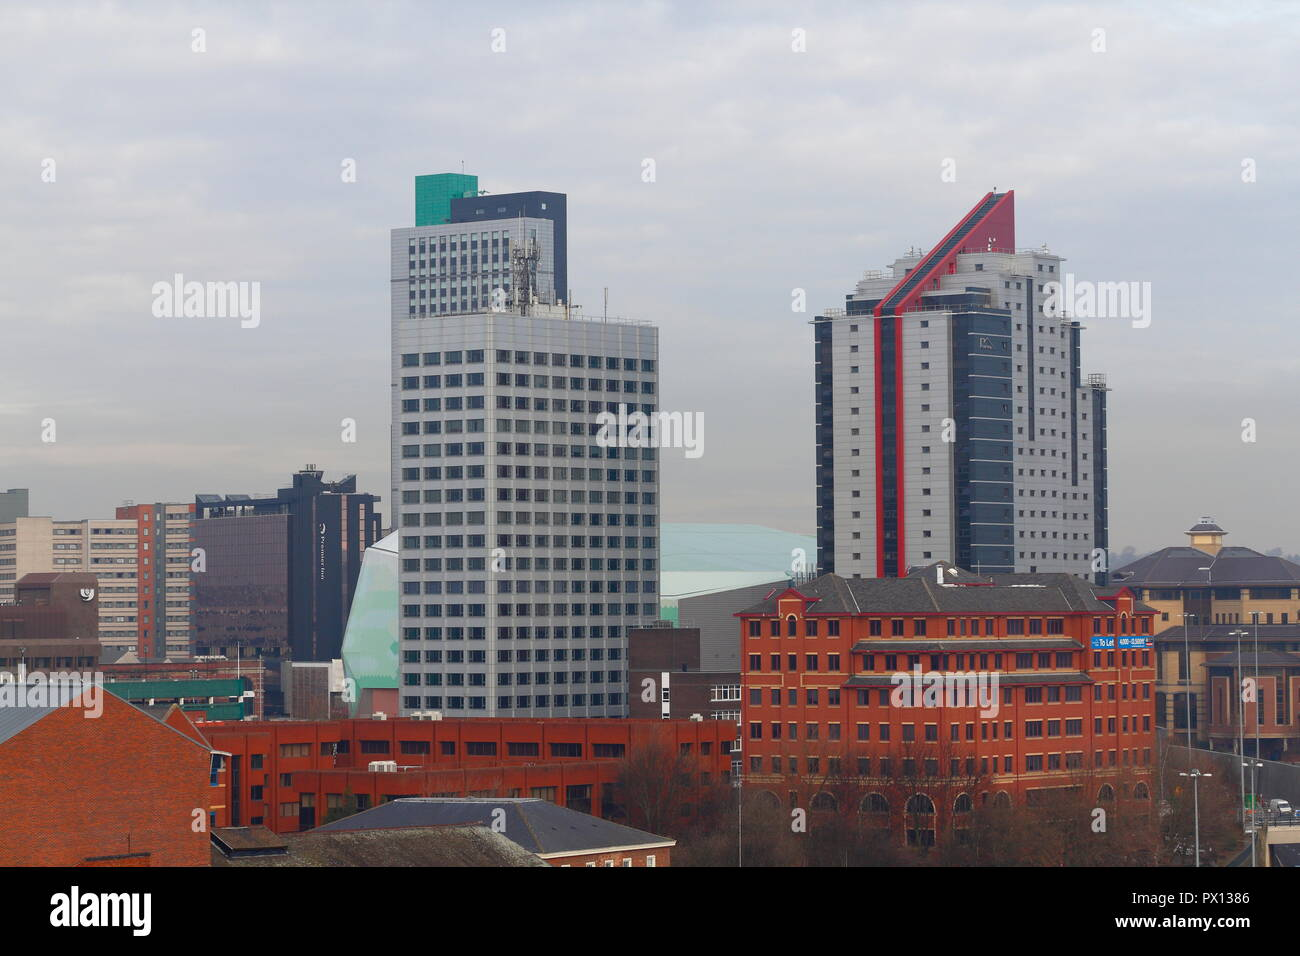 Tall buildings in Leeds towering above the First Direct Arena. - Stock Image